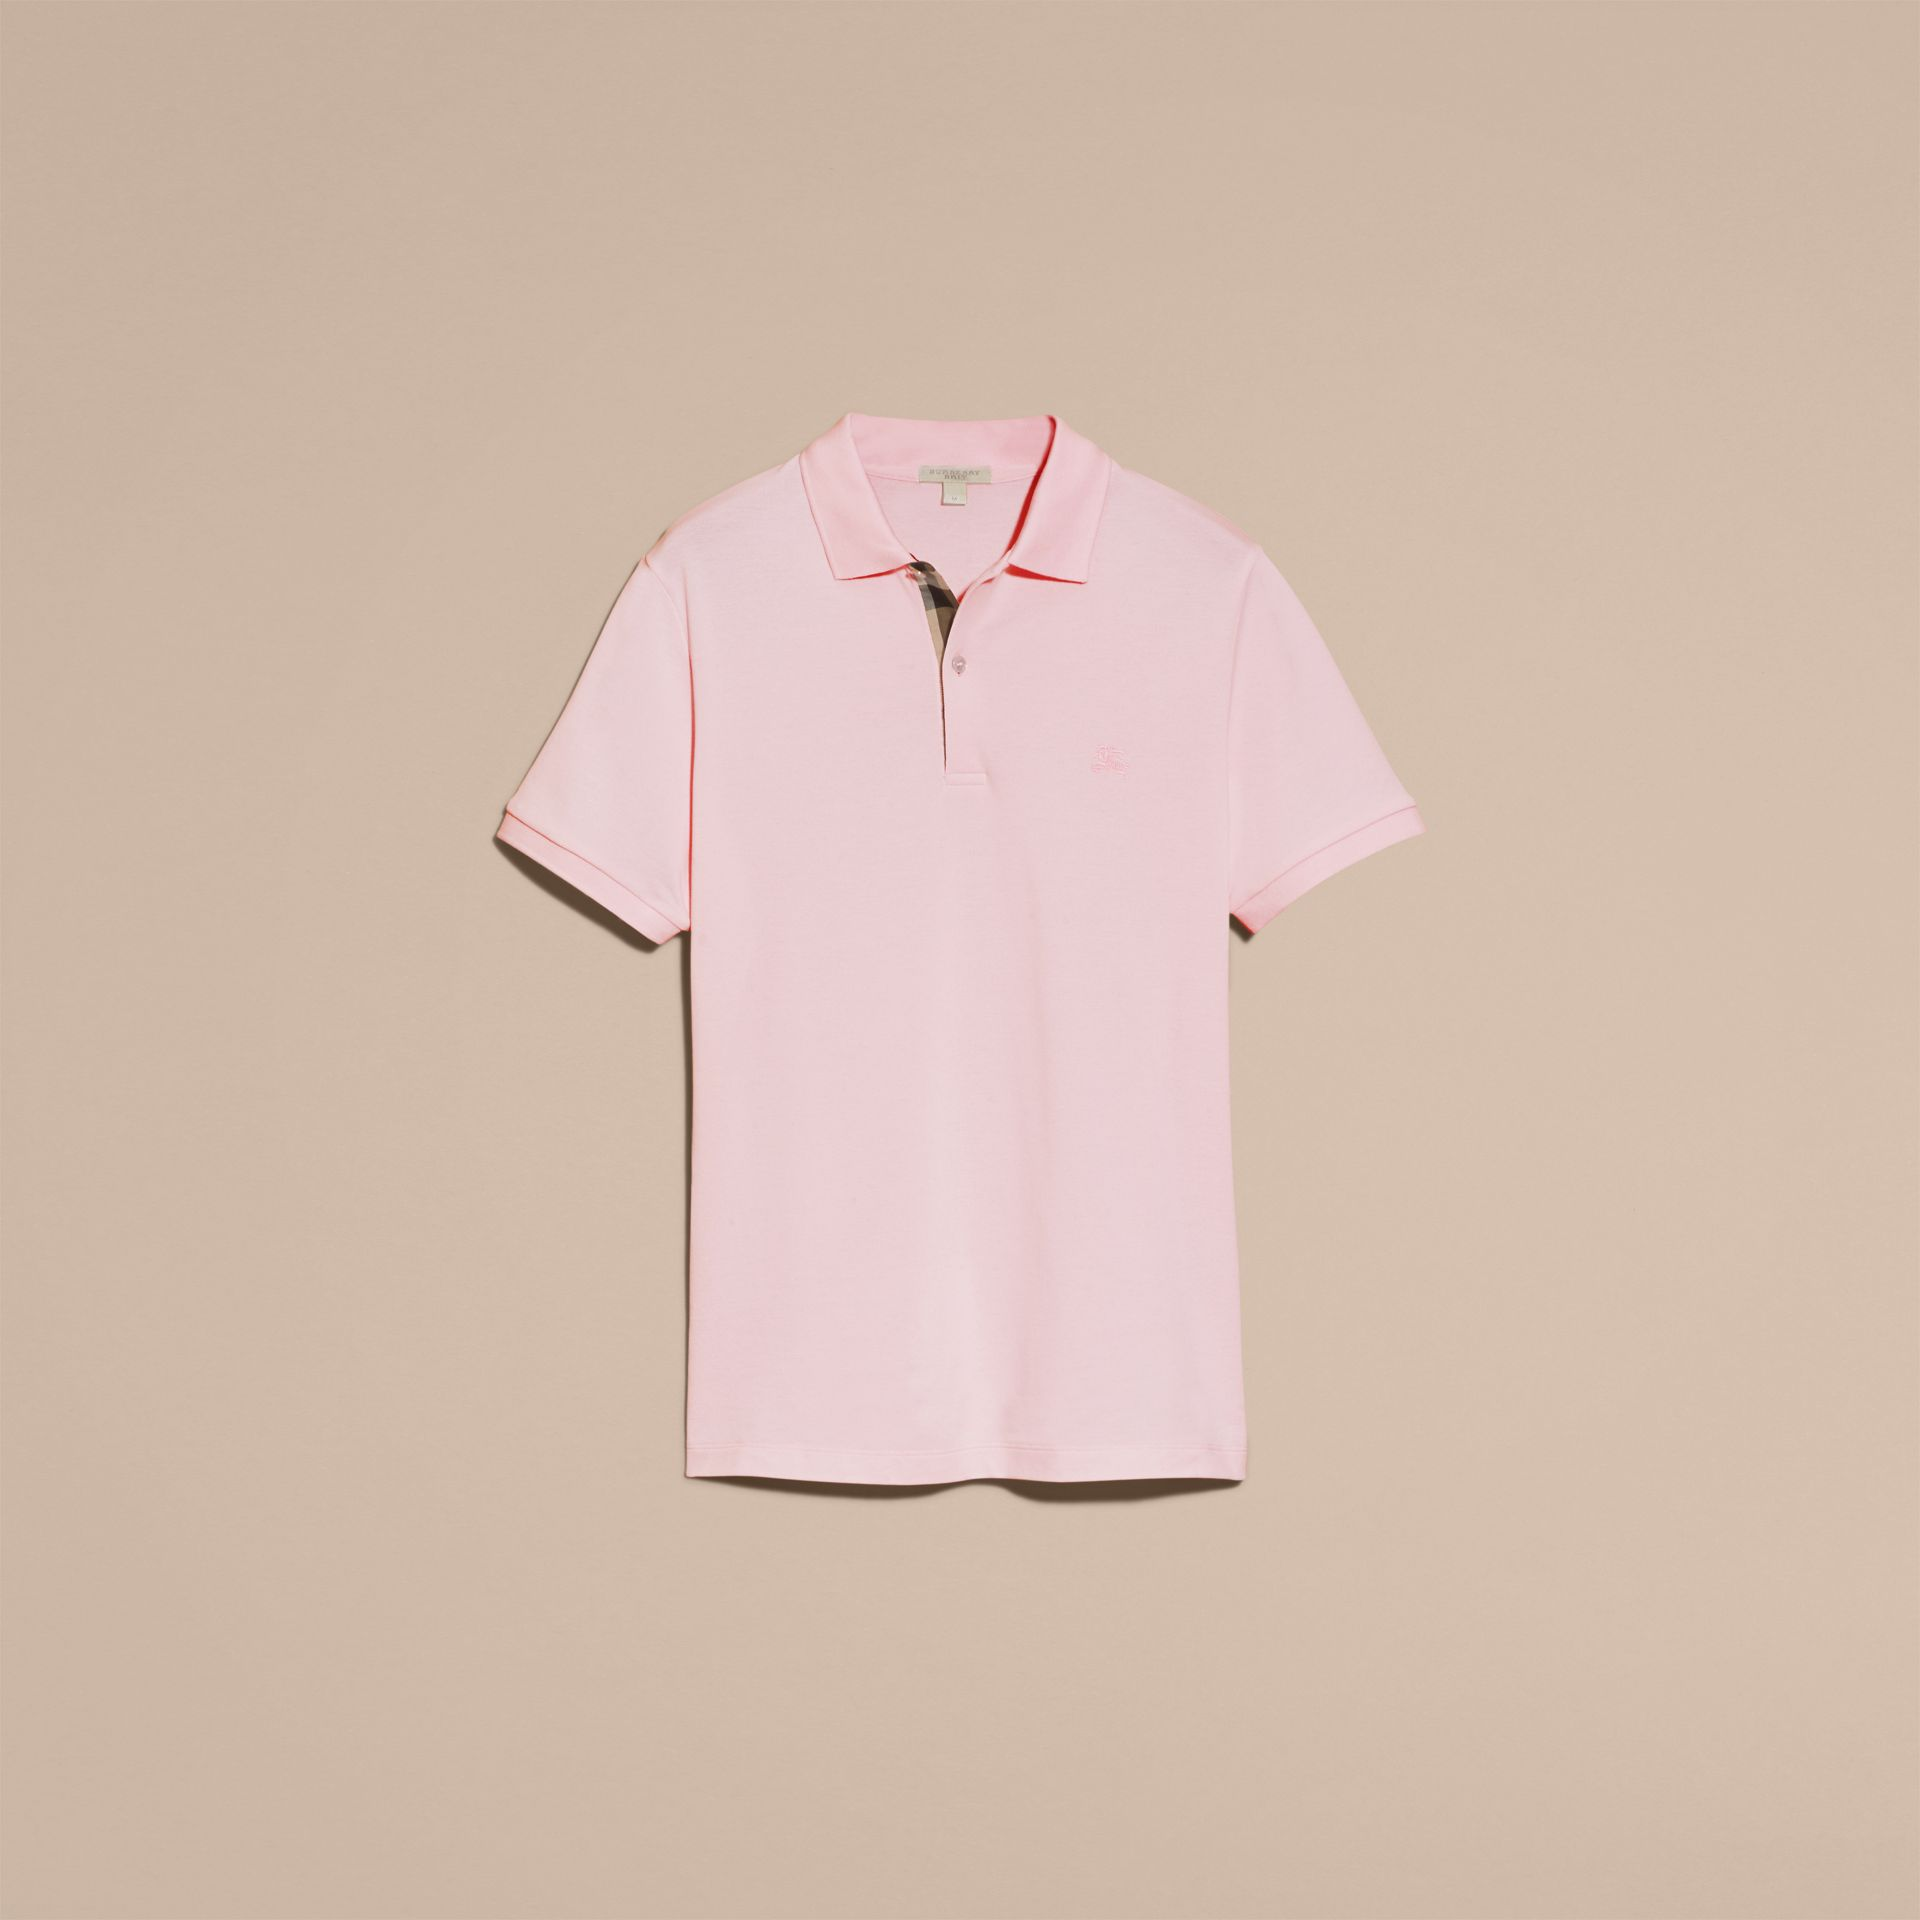 City pink Check Placket Cotton Piqué Polo Shirt City Pink - gallery image 4